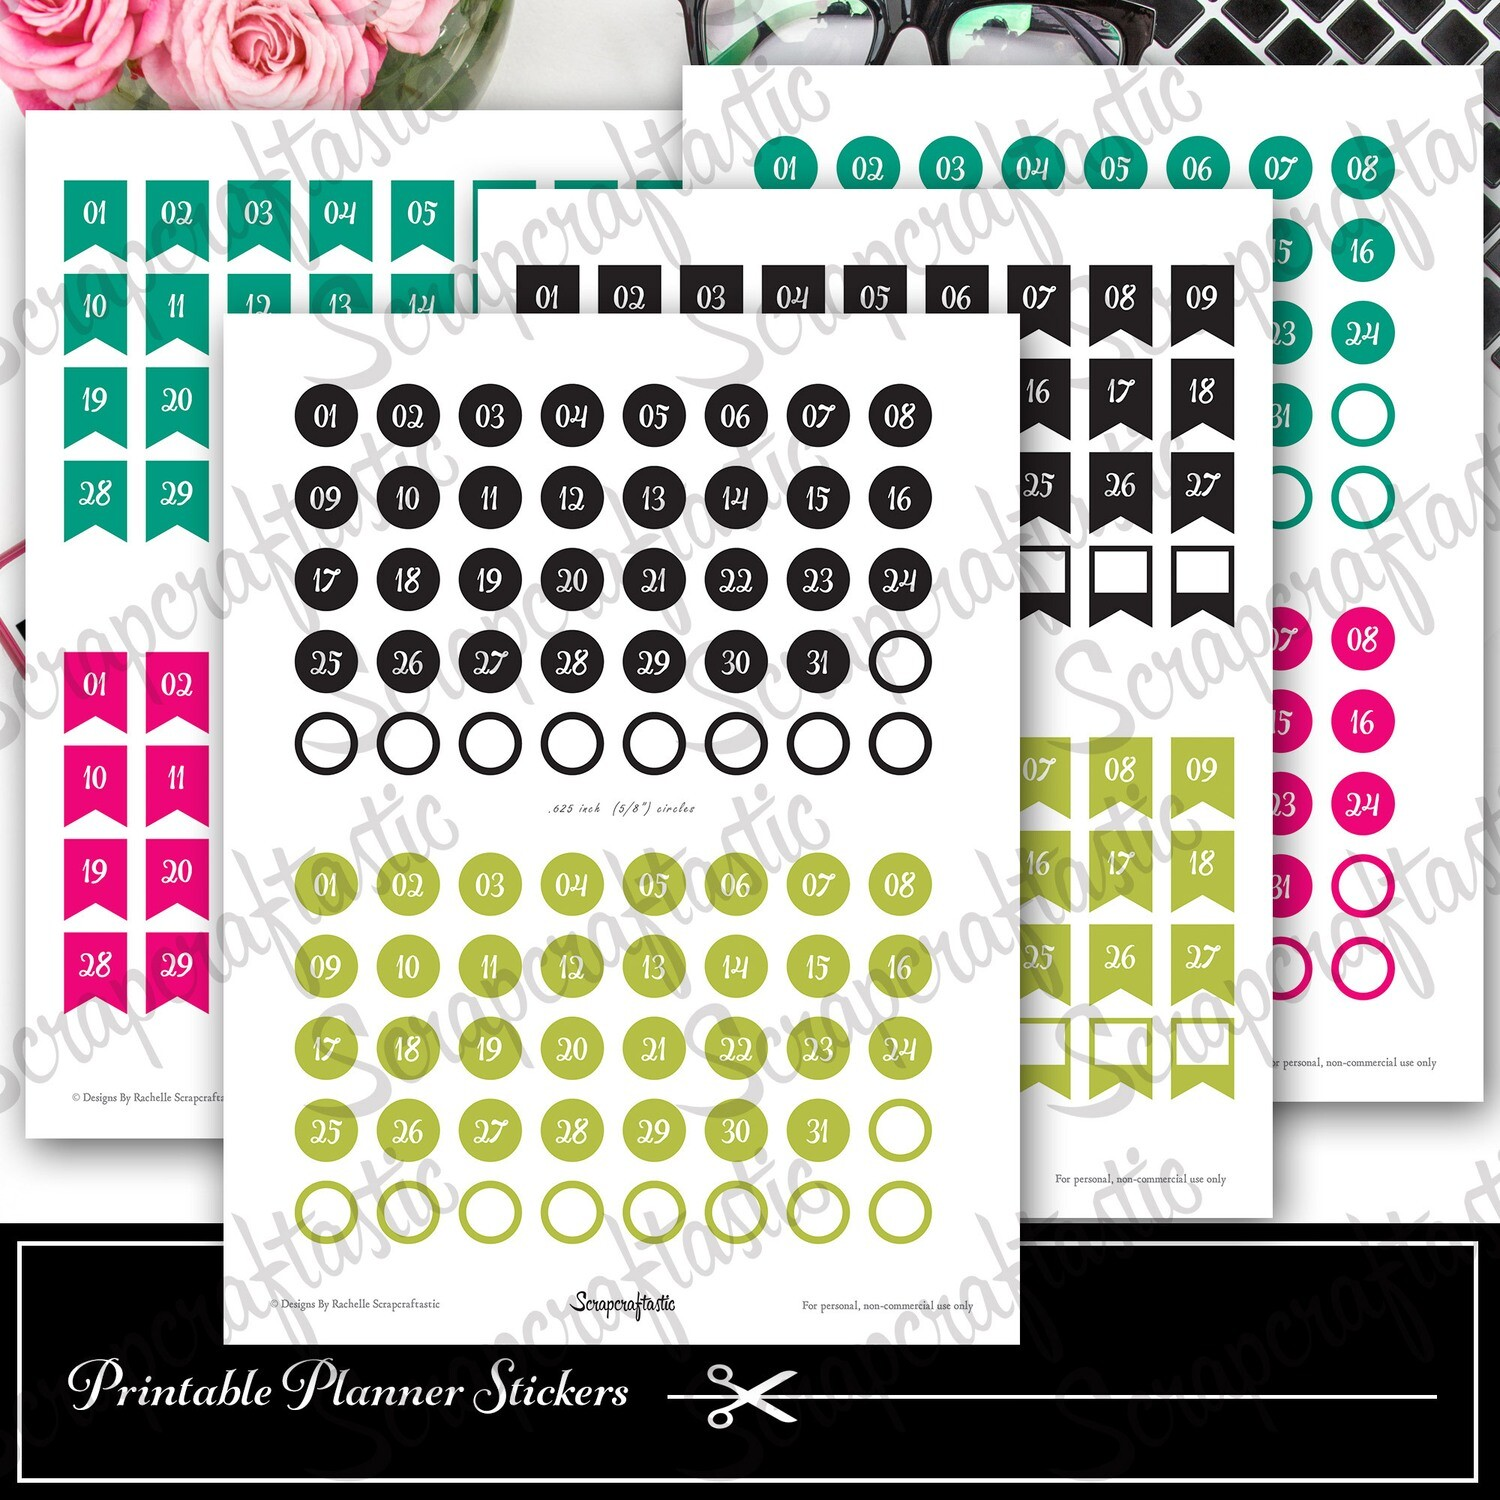 Planner Pro DIY Calendar, List and Monthly Challenge Numbered Printable Planner Stickers for paper planners, binders, inserts